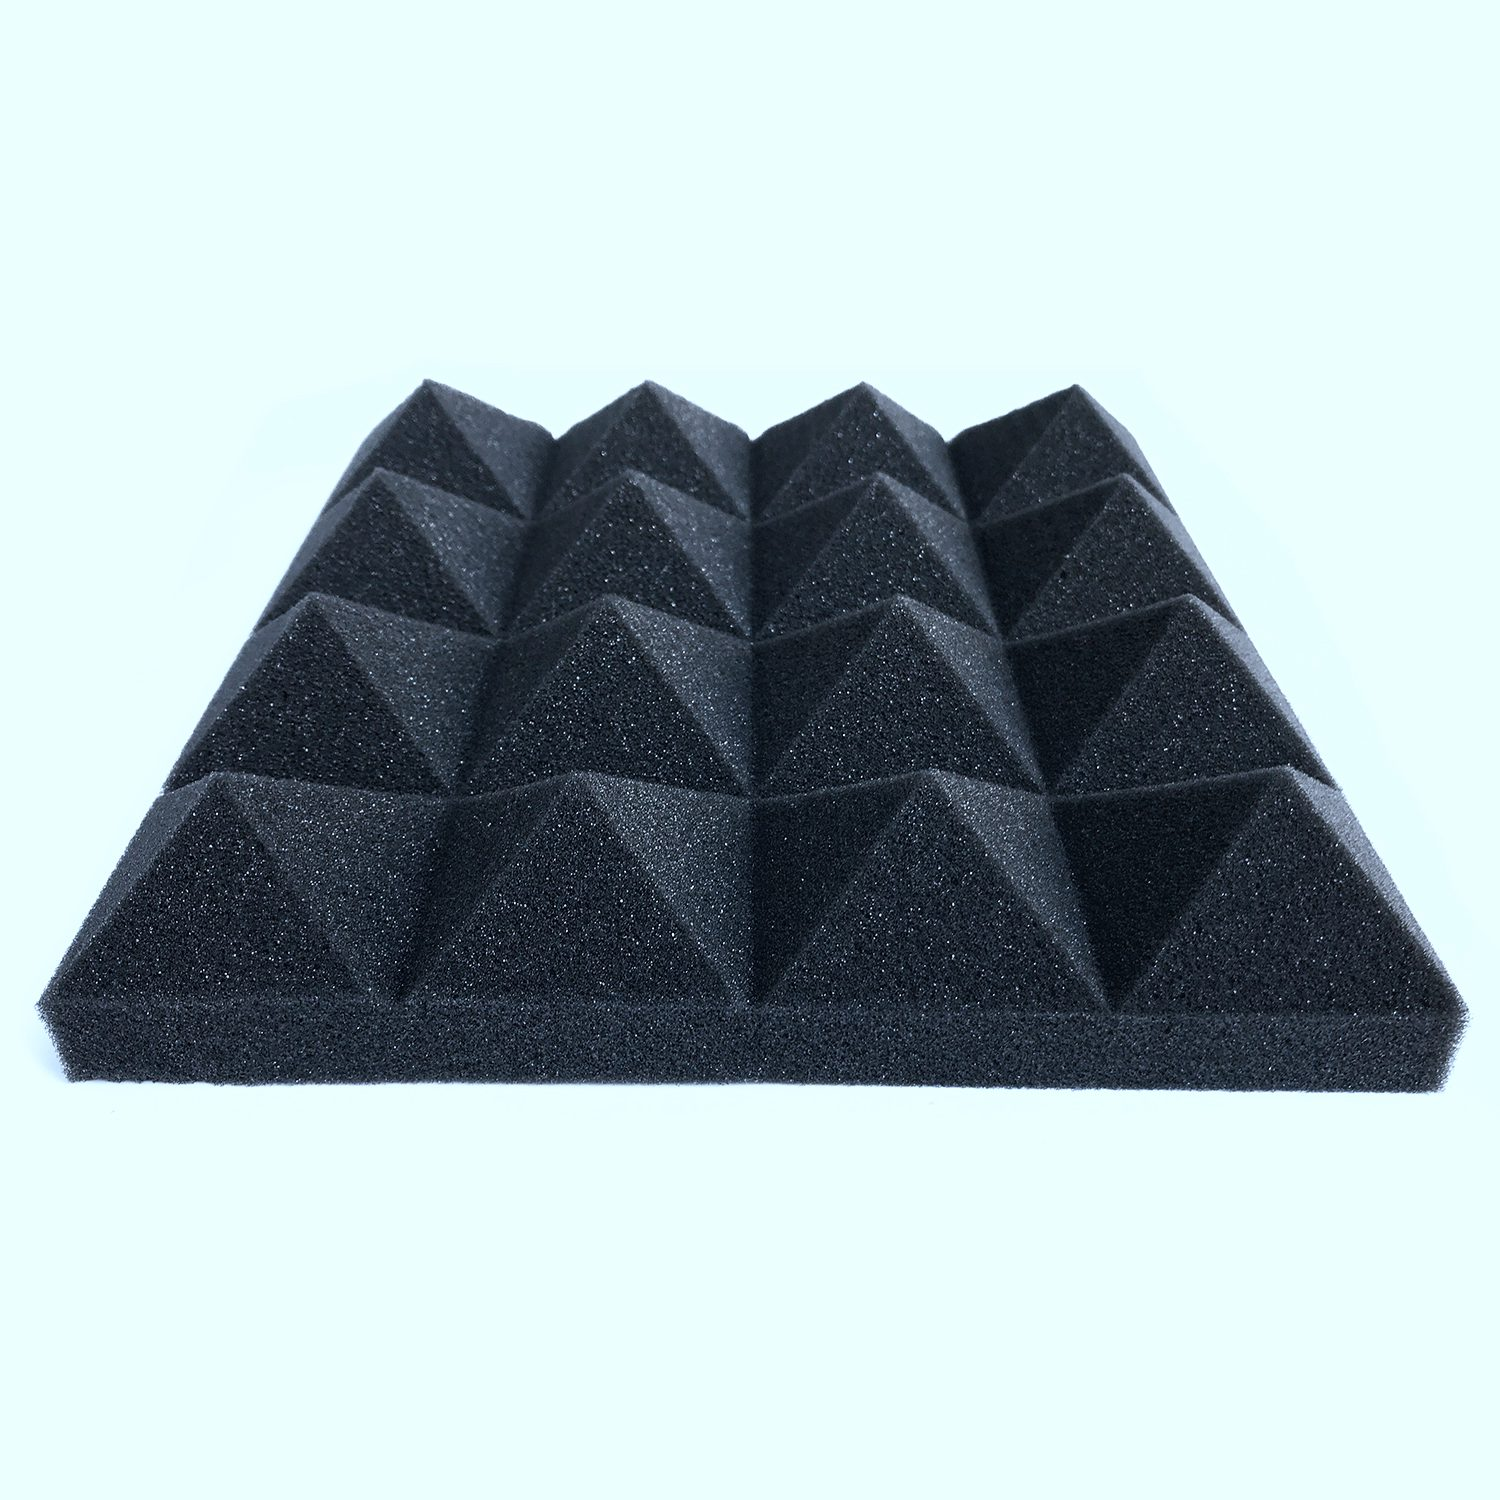 Drop Shipping 12 Pcs Soundproofing Foam Sound Absorption Pyramid Studio Treatment Wall Panels 25*25*5cm Acoustic Foam